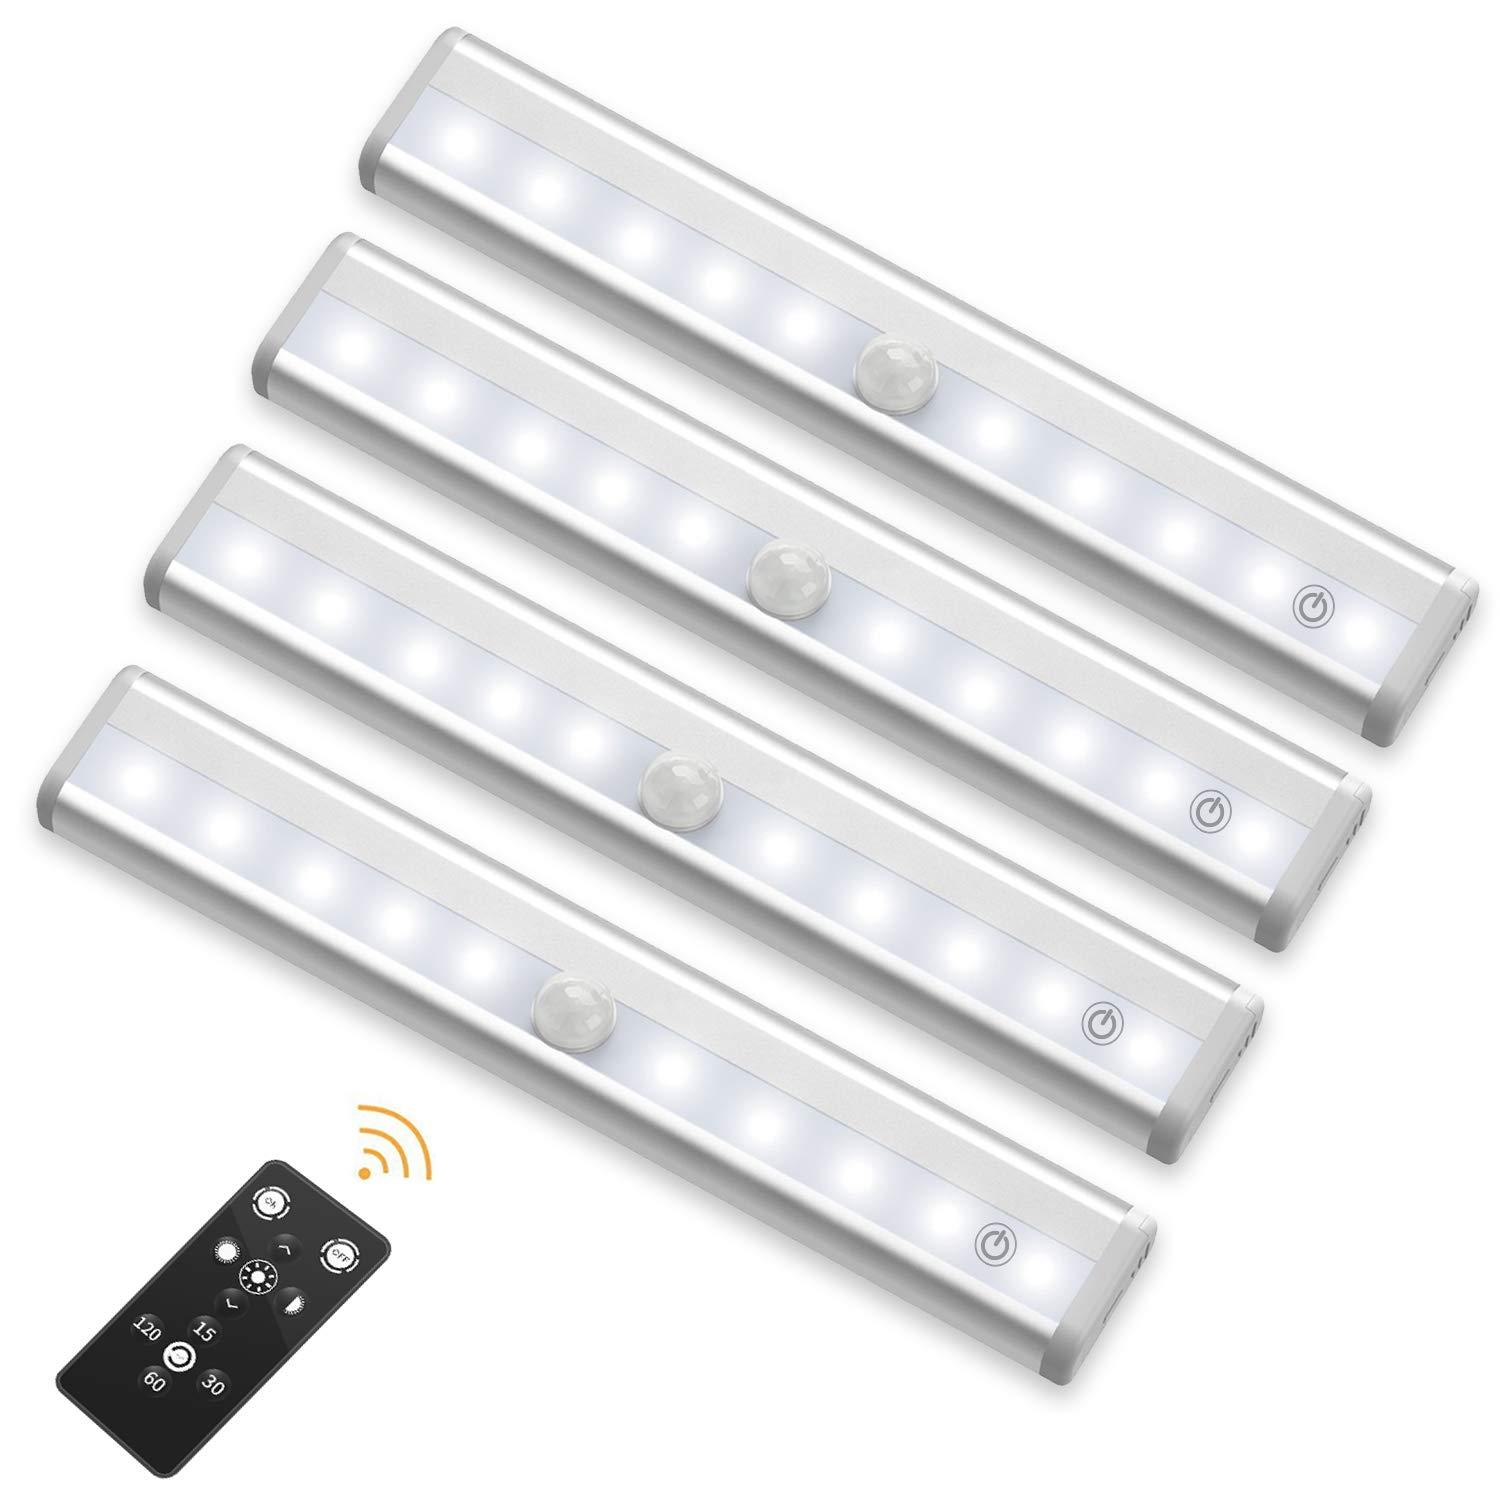 SZOKLED Remote Control LED Lights Bar, Wireless Portable LED Under Cabinet Lighting, Dimmable Closet Light Stair Night Lights Battery Operated, Stick on Anywhere Safe Light for Hallway Kitchen Bedroom